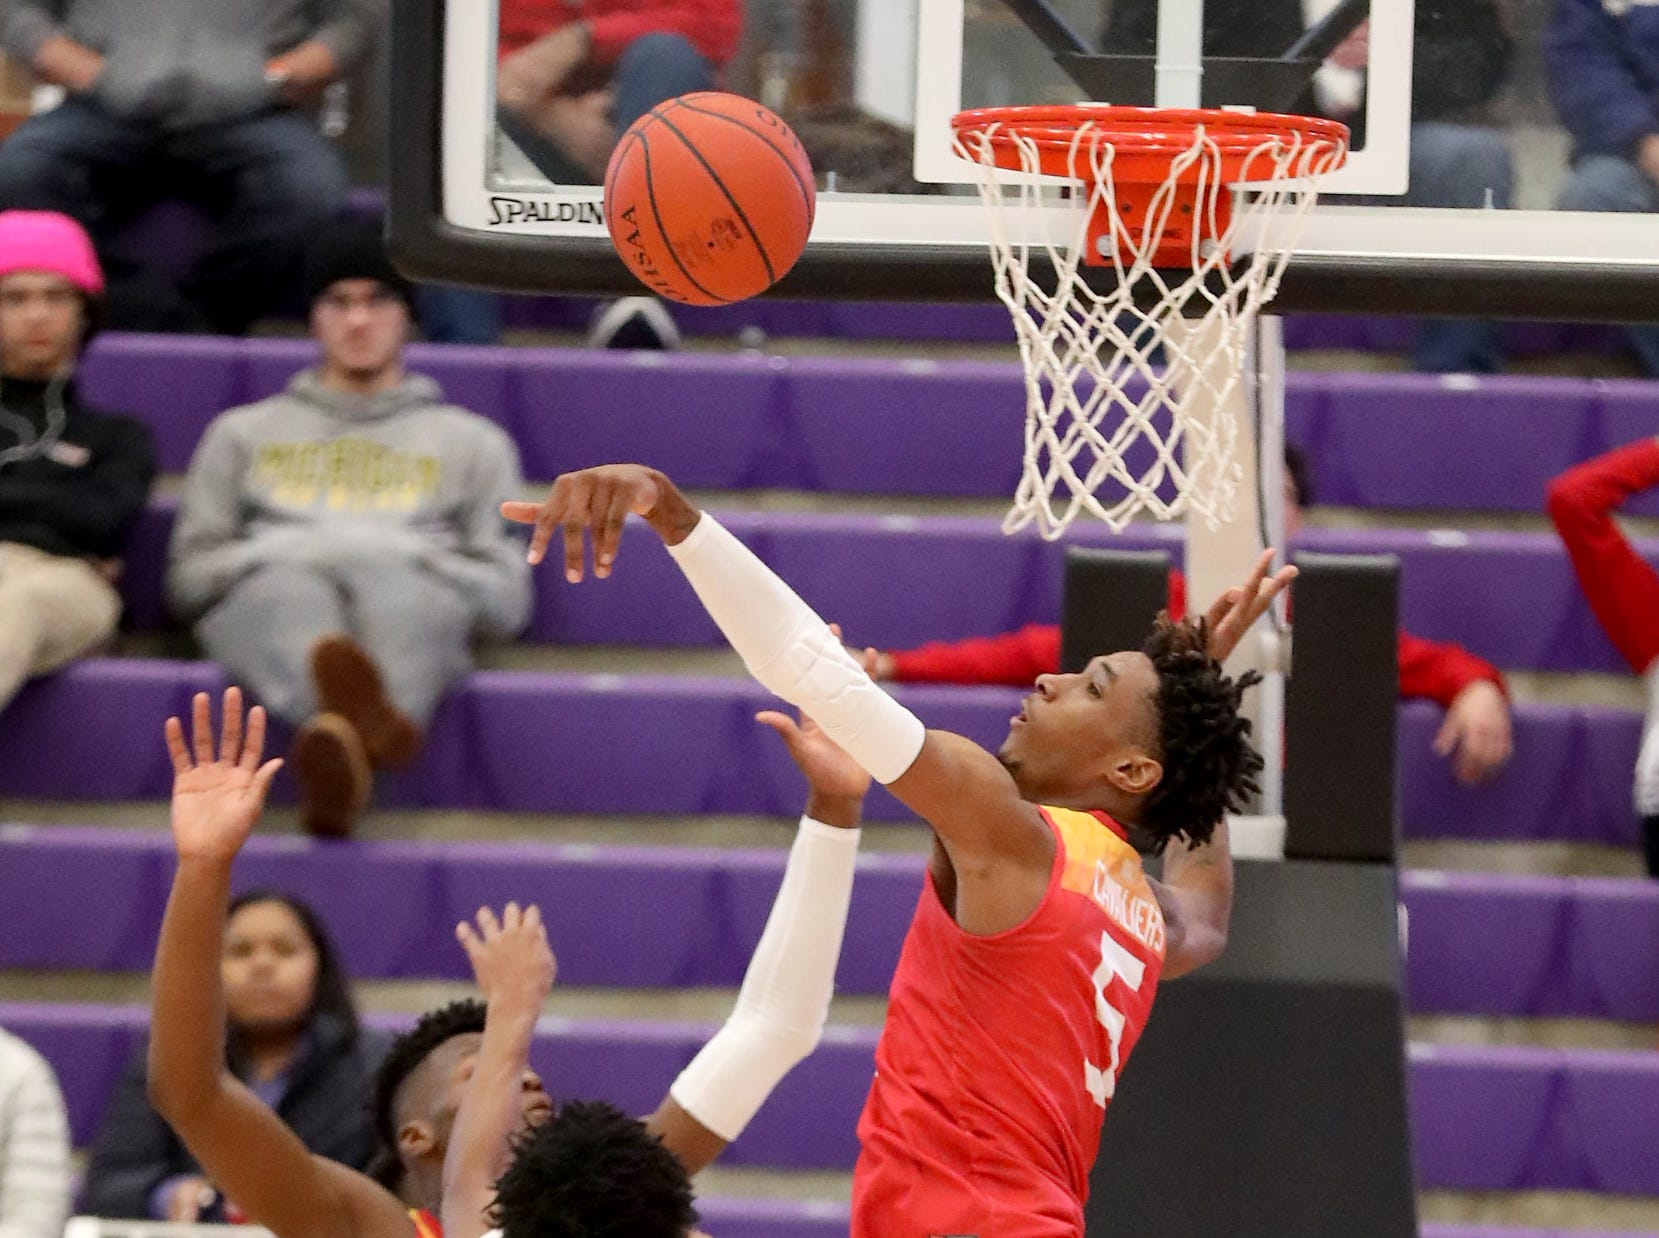 Purcell Marian forward A.J. Garrett blocks a shot by Deer Park guard Steve Gentry during the Midwest King Classic at Wade E Miller Arena Sunday, Jan. 20, 2019.